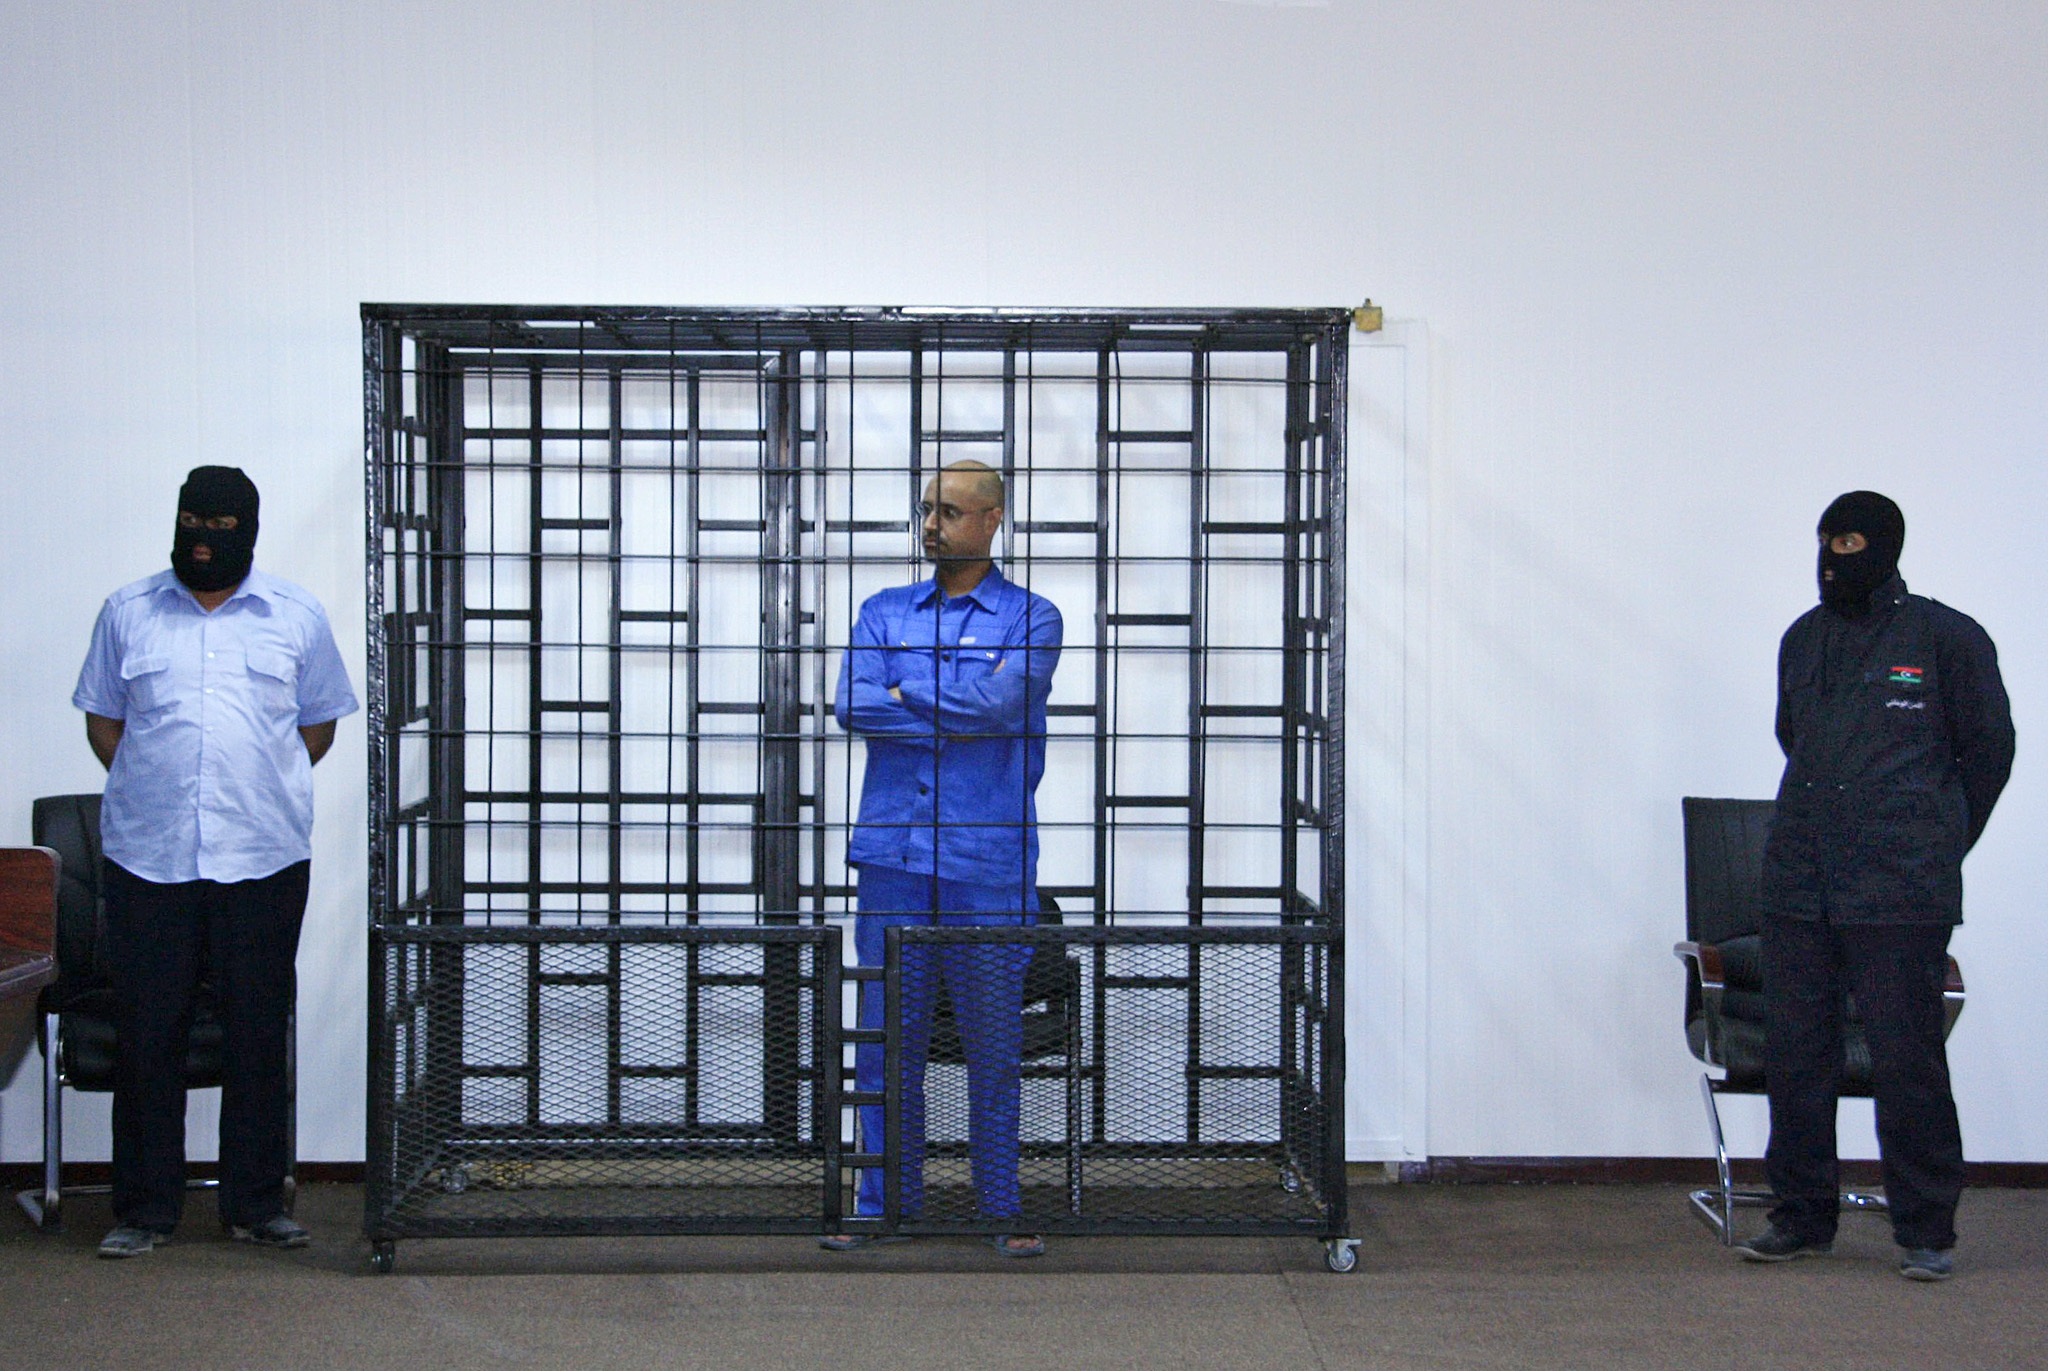 Saif al-Islam Gaddafi attends a hearing behind bars in a courtroom in Zintan...Saif al-Islam Gaddafi, son of late Libyan leader Muammar Gaddafi, attends a hearing behind bars in a courtroom in Zintan May 15, 2014. REUTERS/Stringer